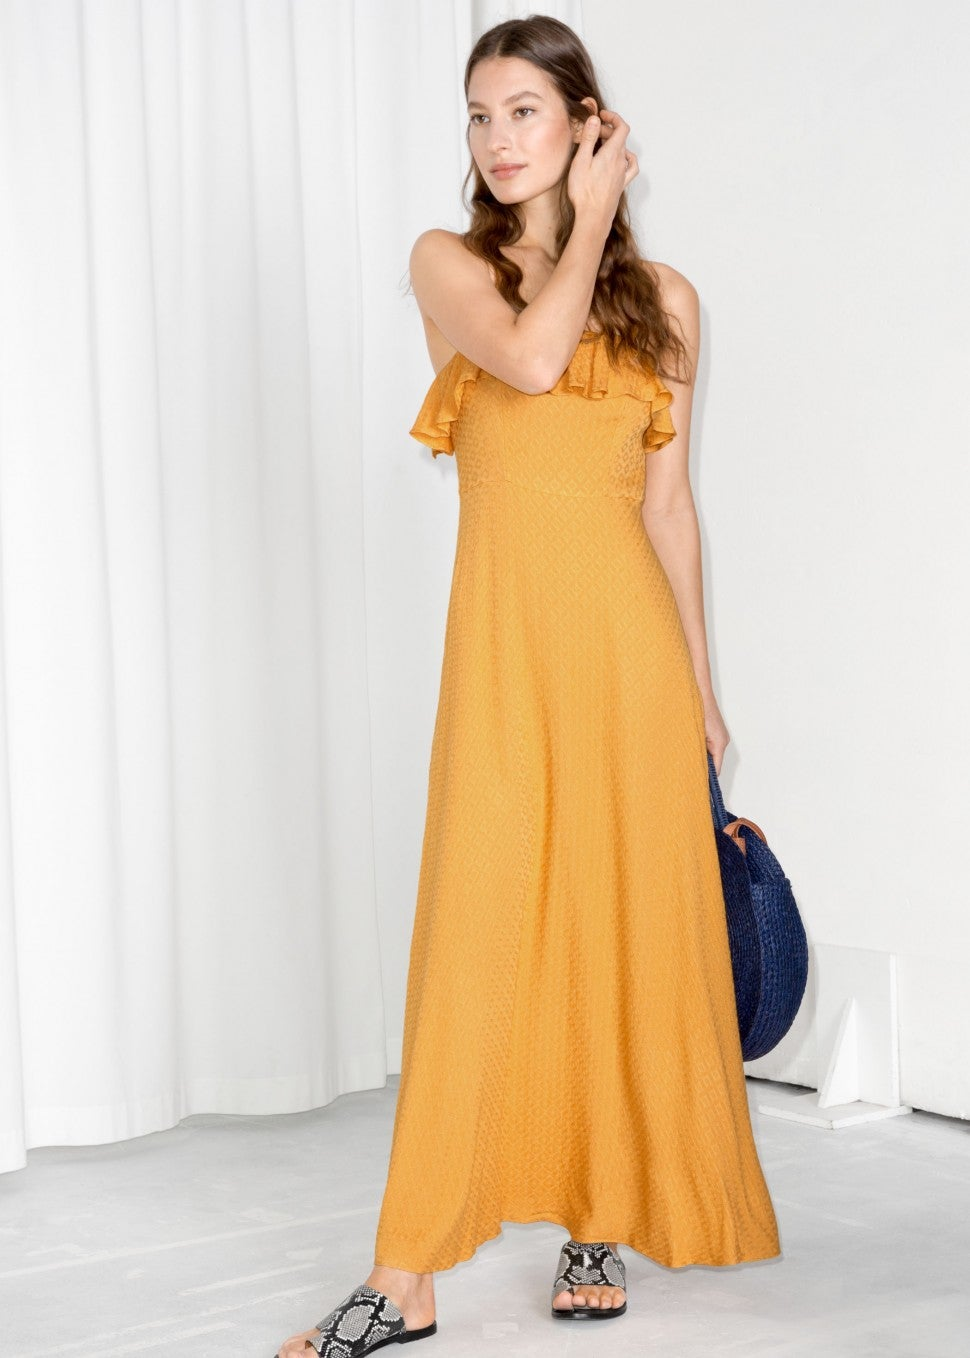 & Other Stories yellow maxi